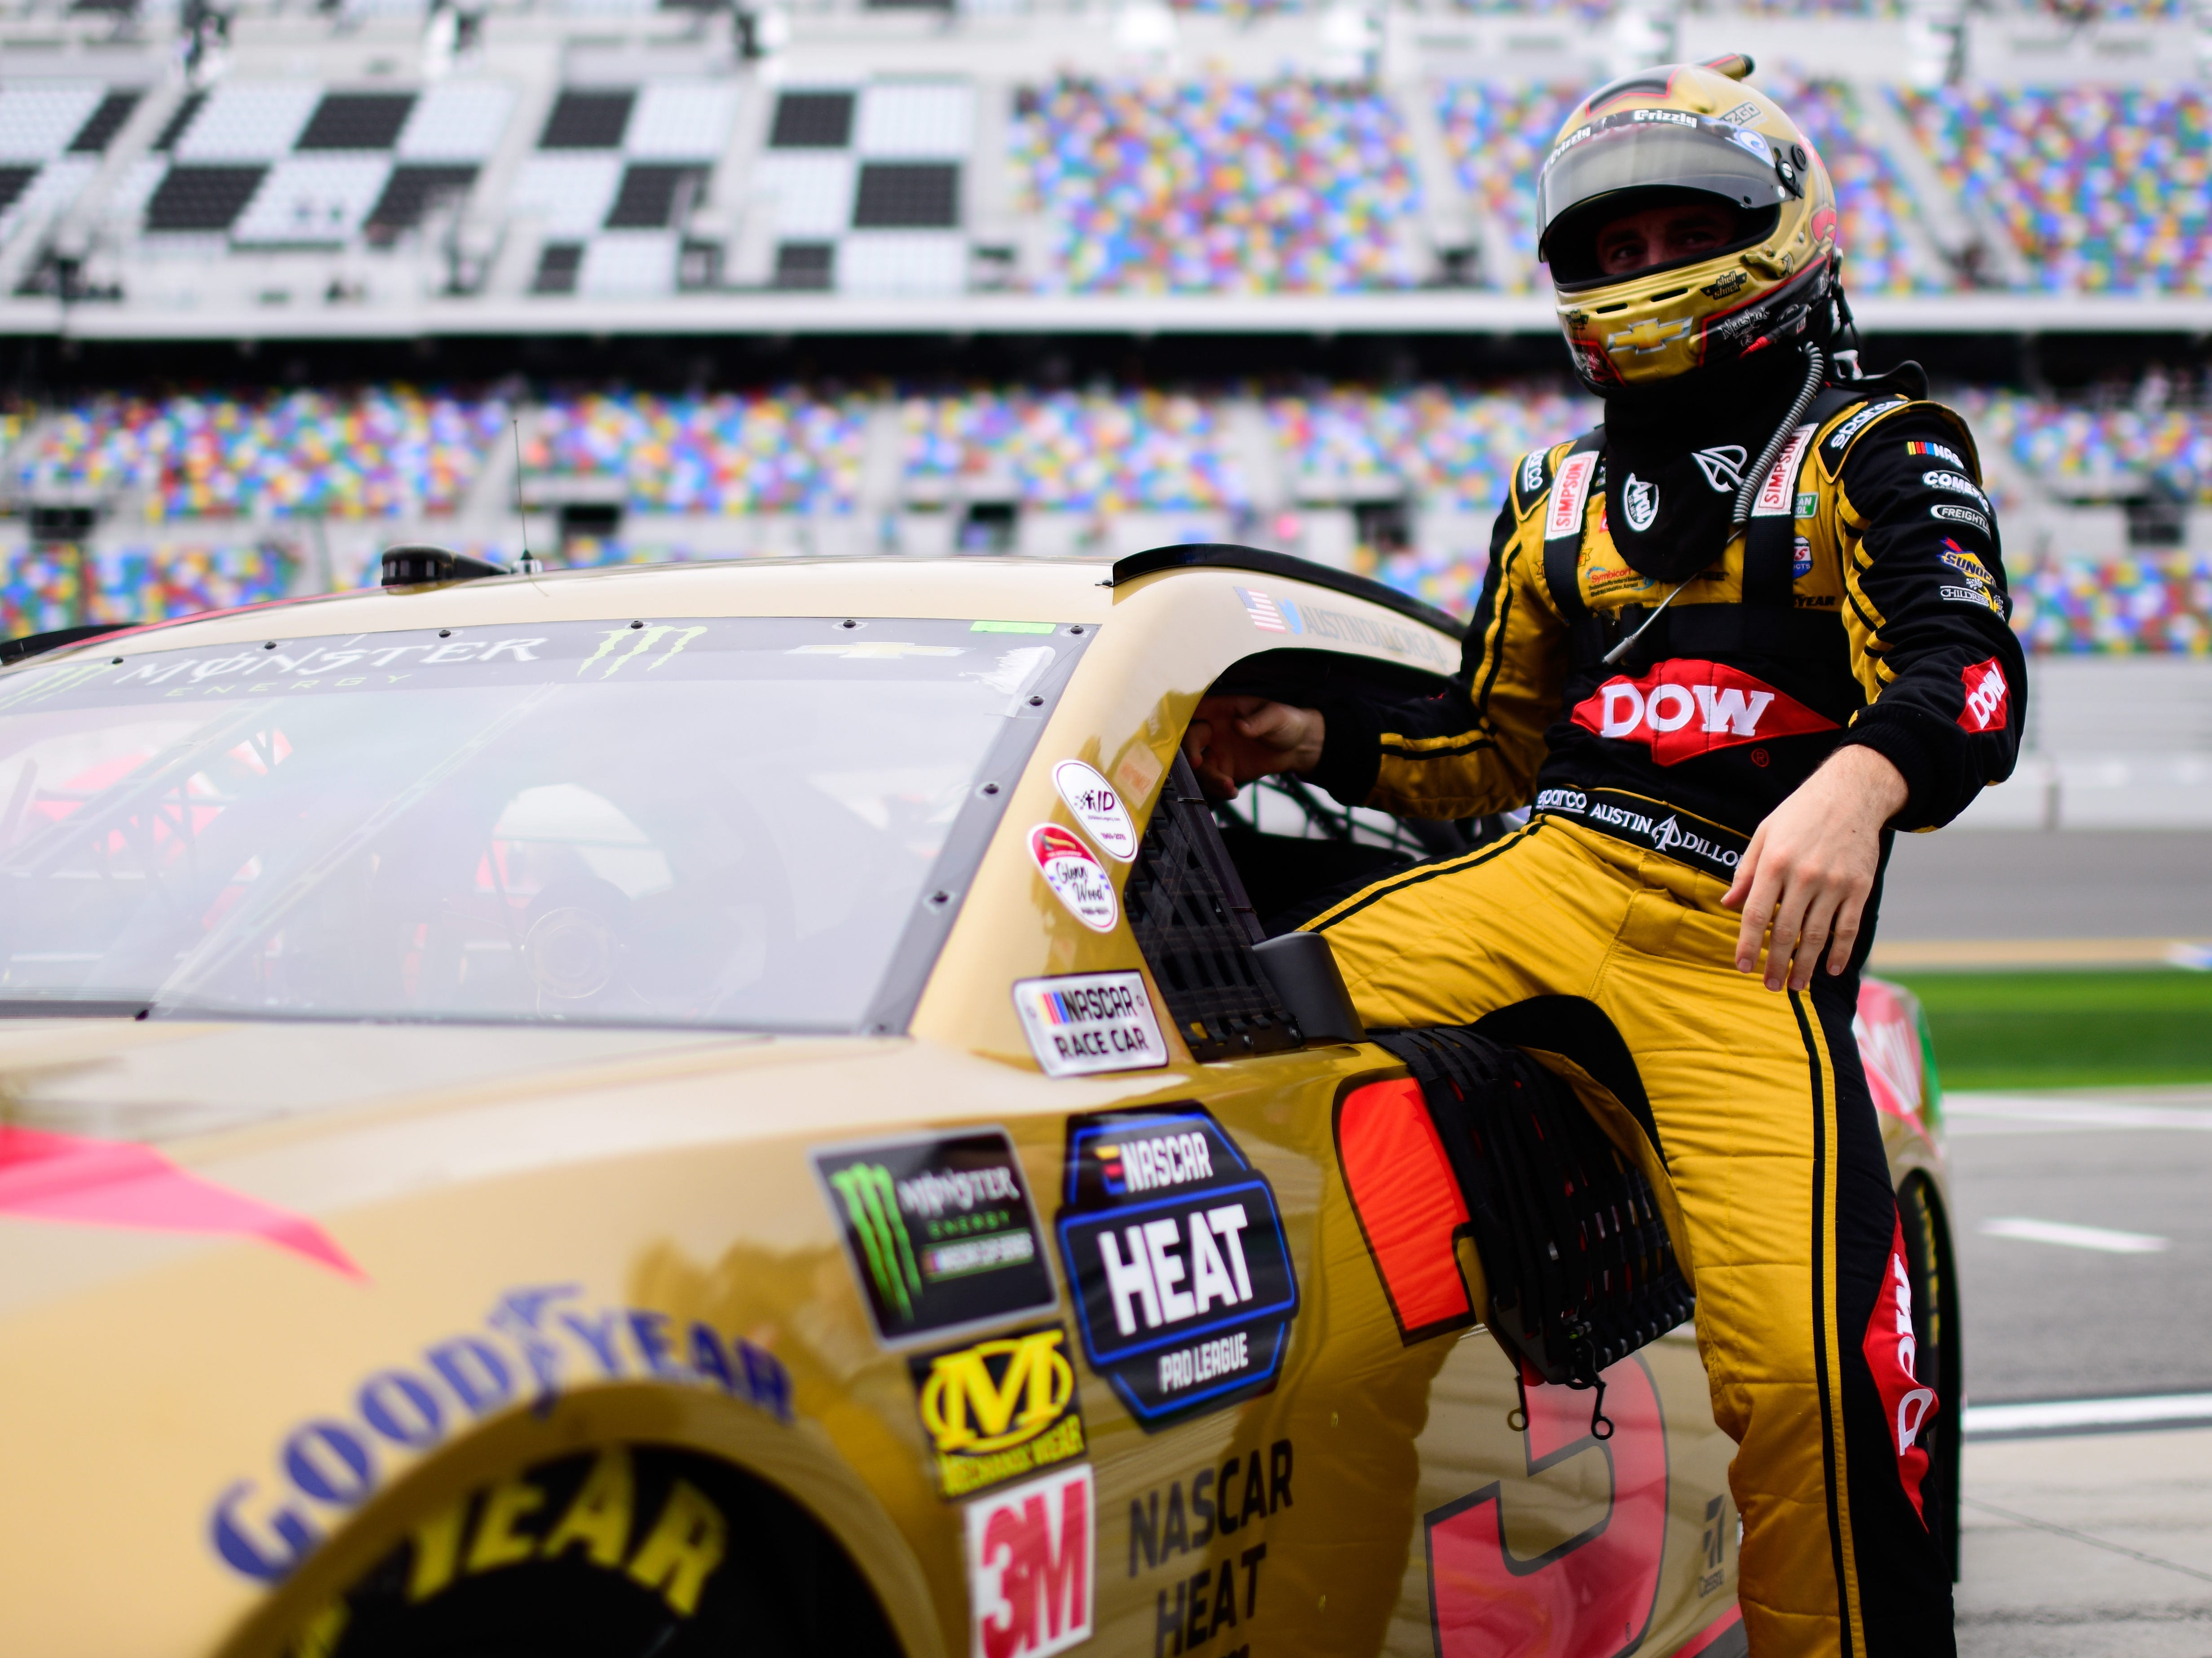 Feb. 10: Austin Dillon, the 2018 Daytona 500 champion, prepares to qualifying for the 2019 race at Daytona International Speedway.